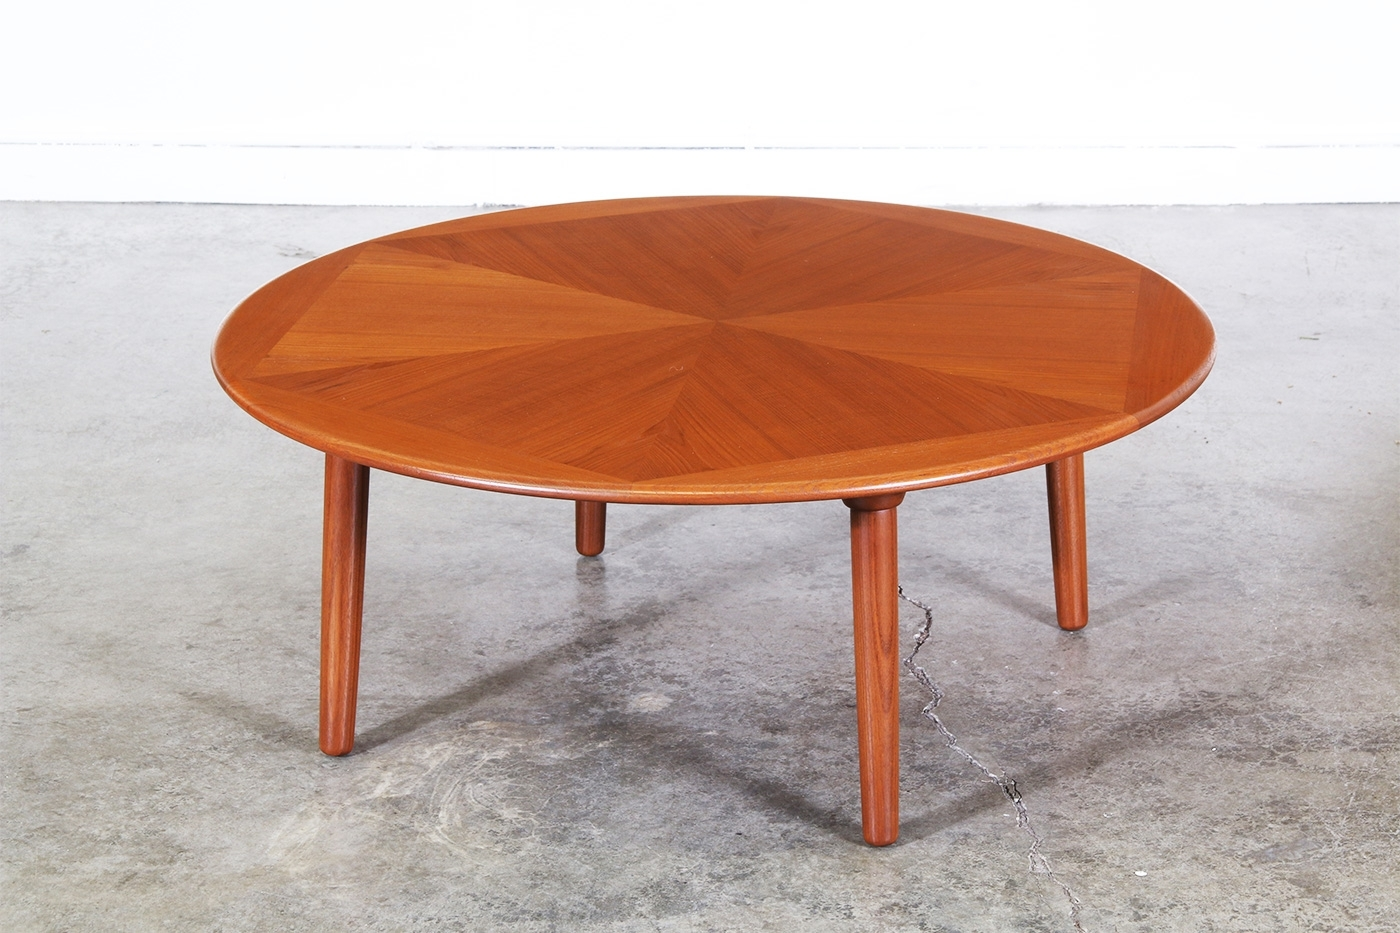 H.w. Klein Teak Coffee Table For Brahmin | Vintage Supply Store intended for Round Teak Coffee Tables (Image 9 of 30)